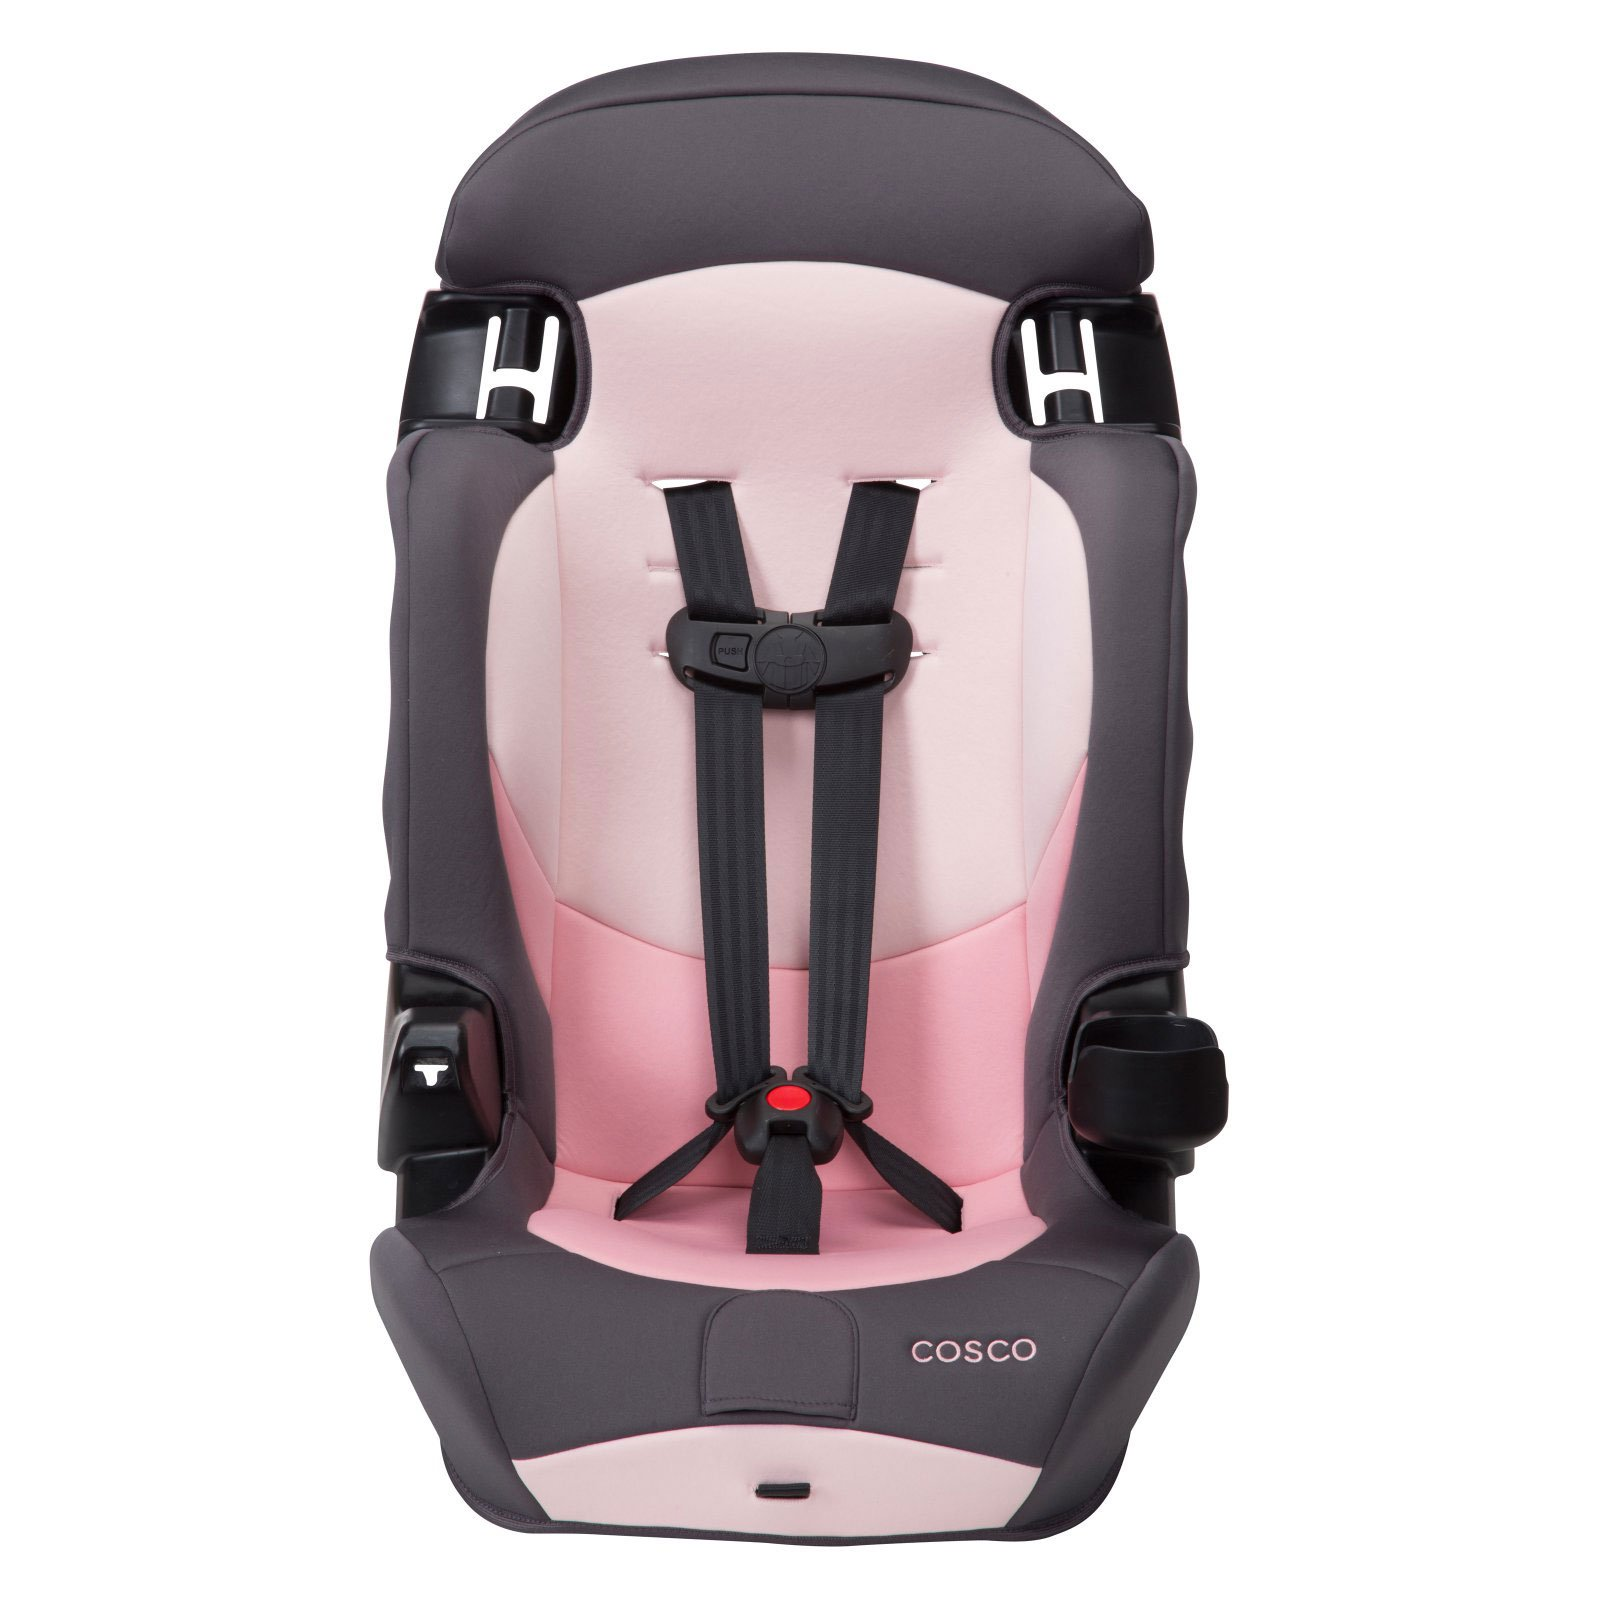 Costco Finale DX 2 in 1 Convertible Baby Toddler Booster Car Seat, Sweetberry